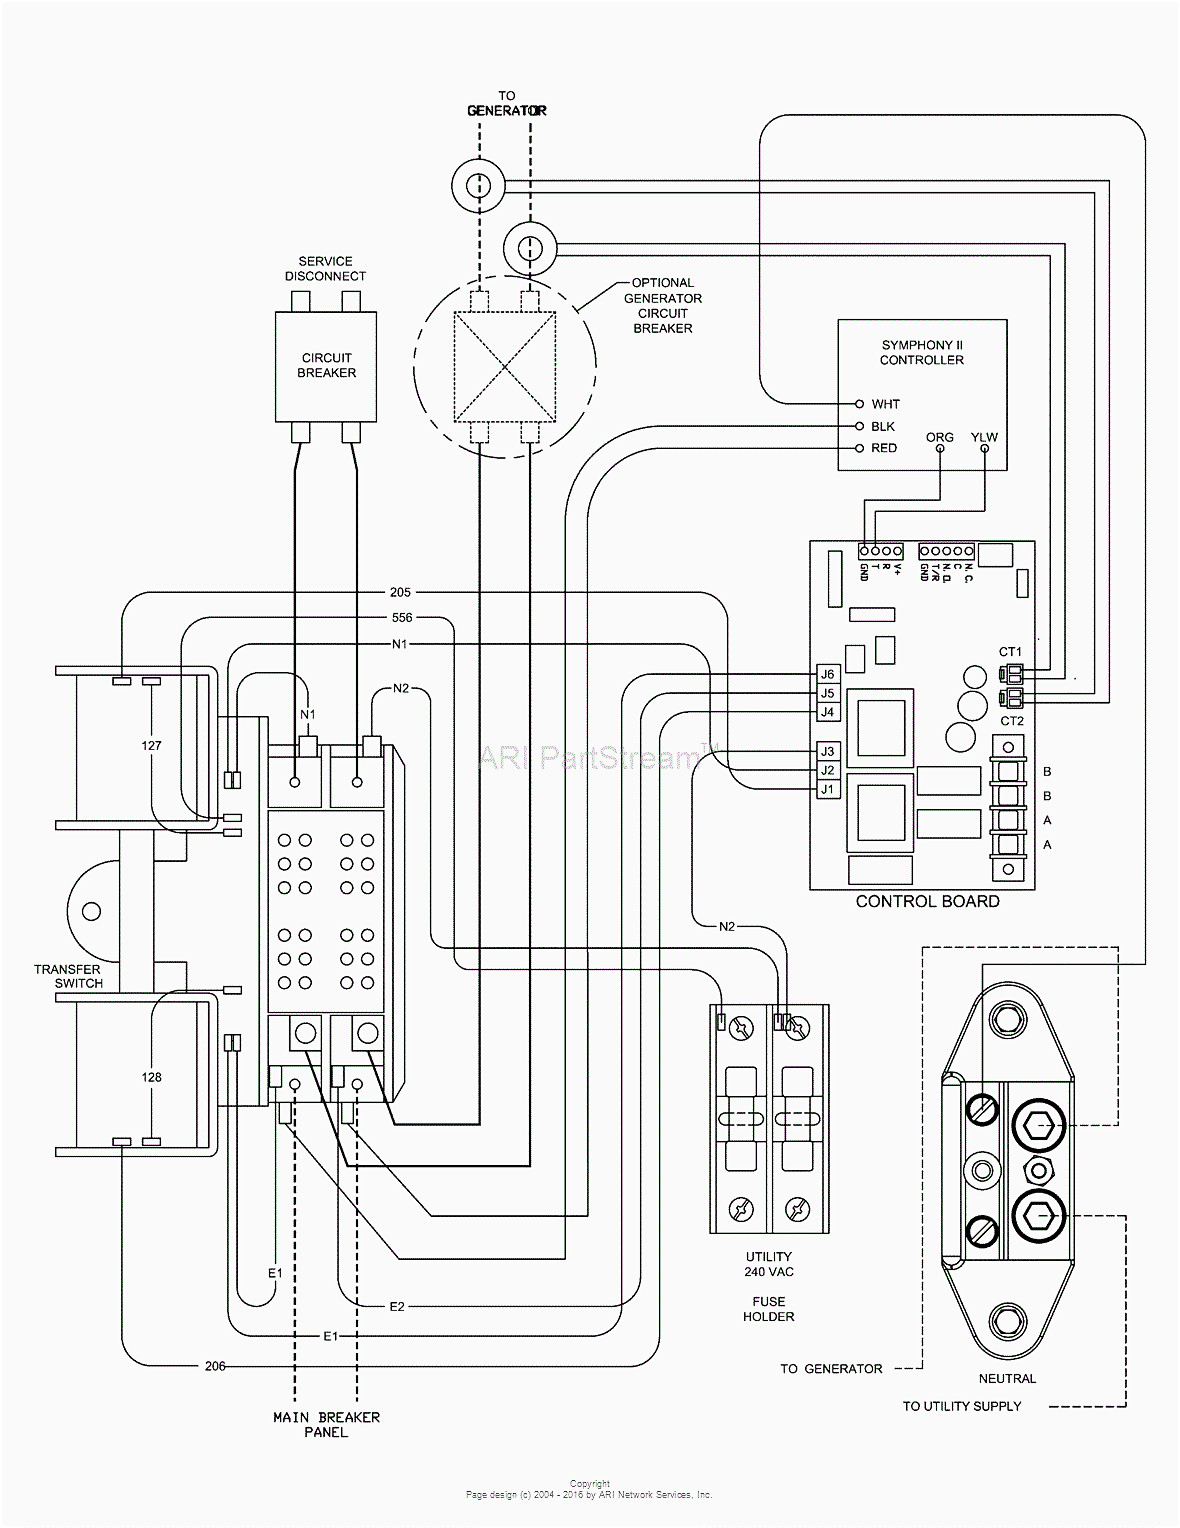 Wiring Diagram Sheets Detail: Name: generac 200 amp ...